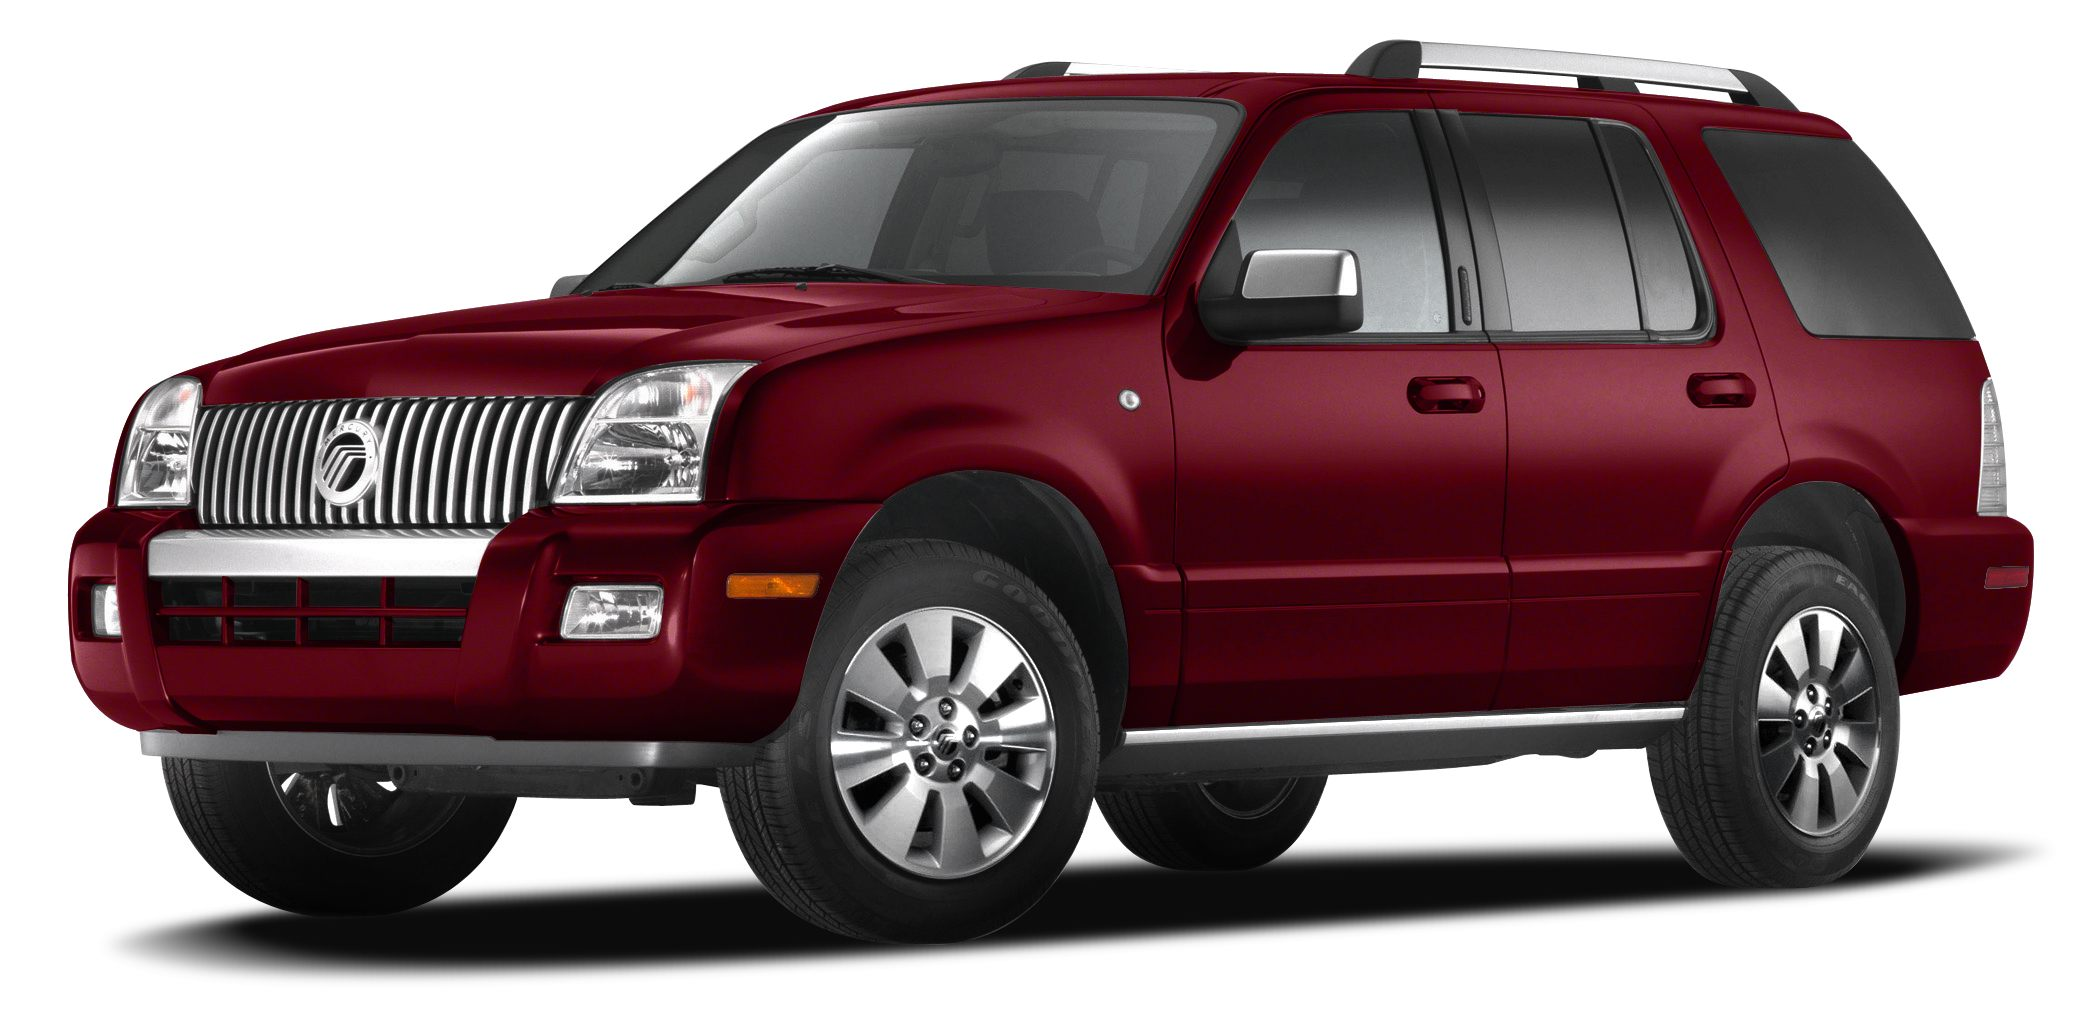 2010 Mercury Mountaineer Premier The SUV youve always wanted In a class by itself Please dont